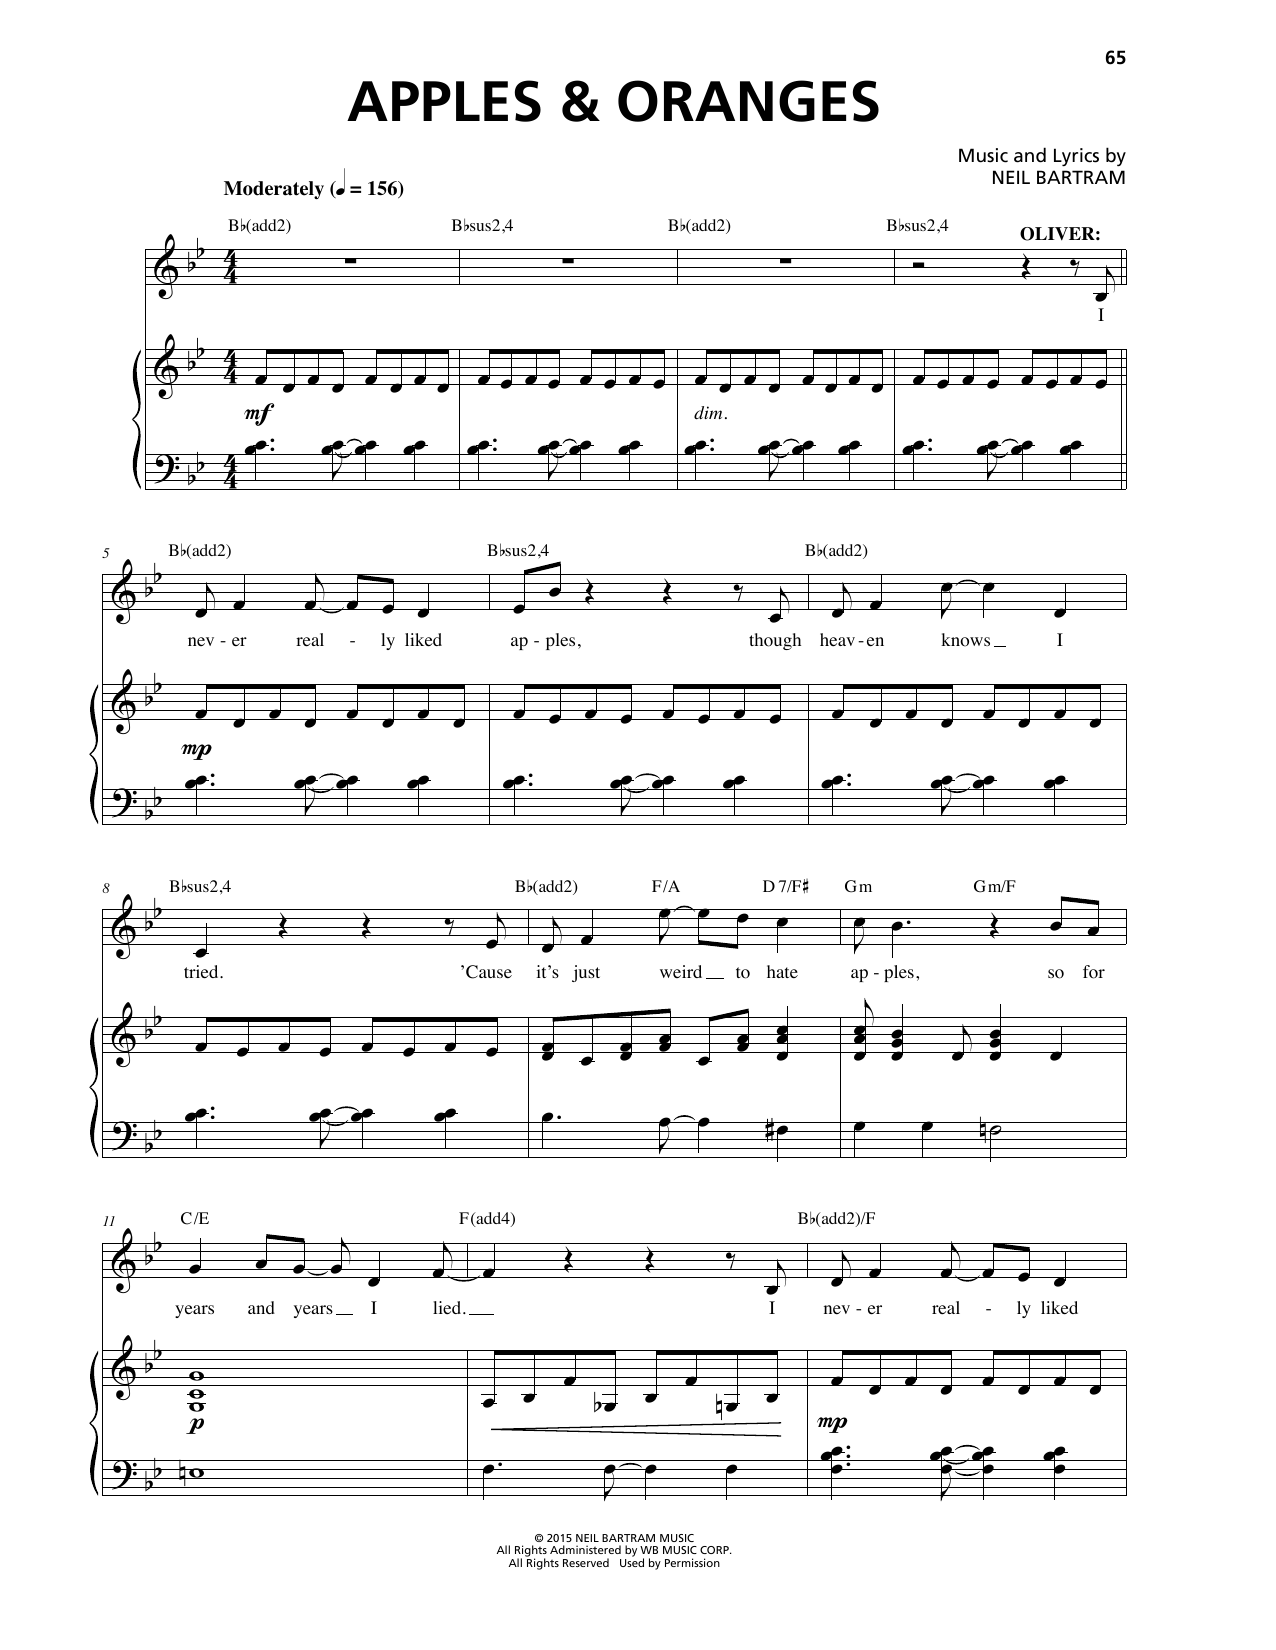 Apples & Oranges Sheet Music